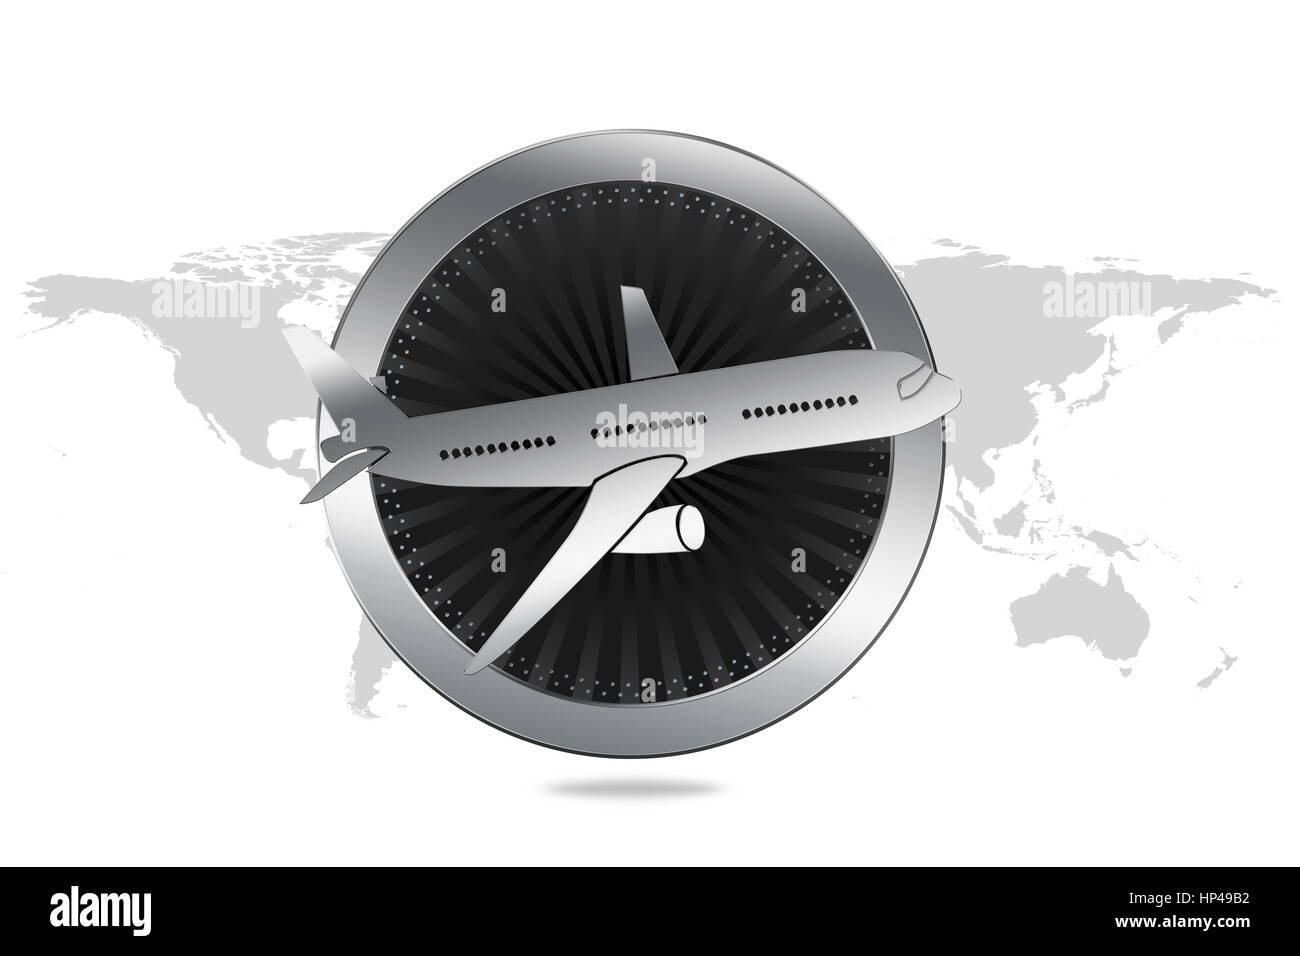 Travel Symbol / Airplane - Airline Symbol in Luxury style - Stock Image